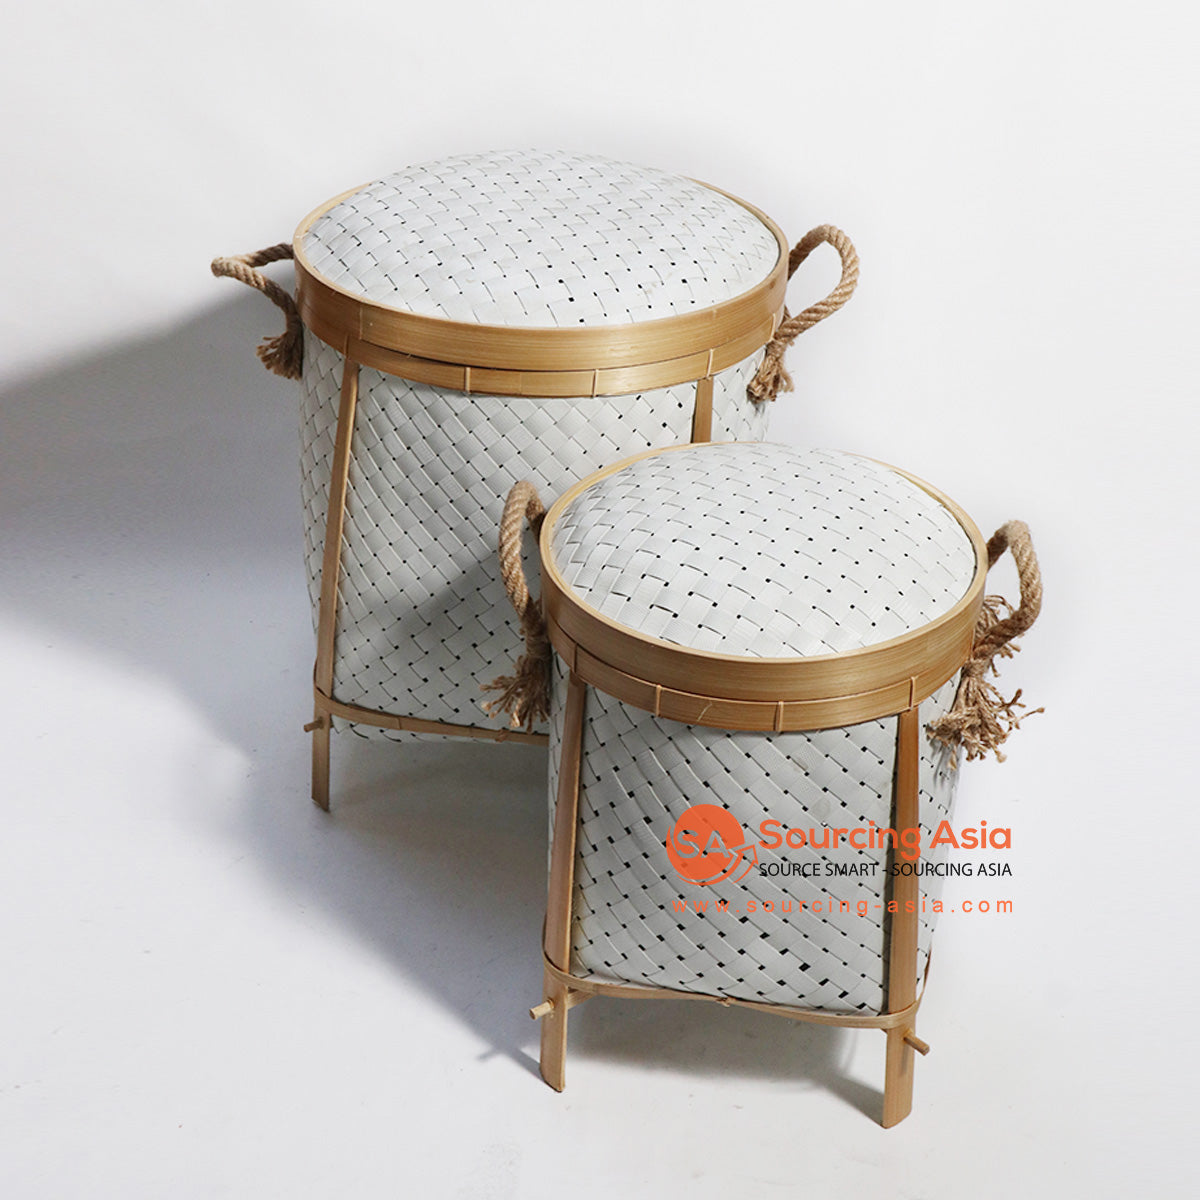 HBSC186 SET OF 2 SYNTHETIC RATTAN AND BAMBOO BASKET